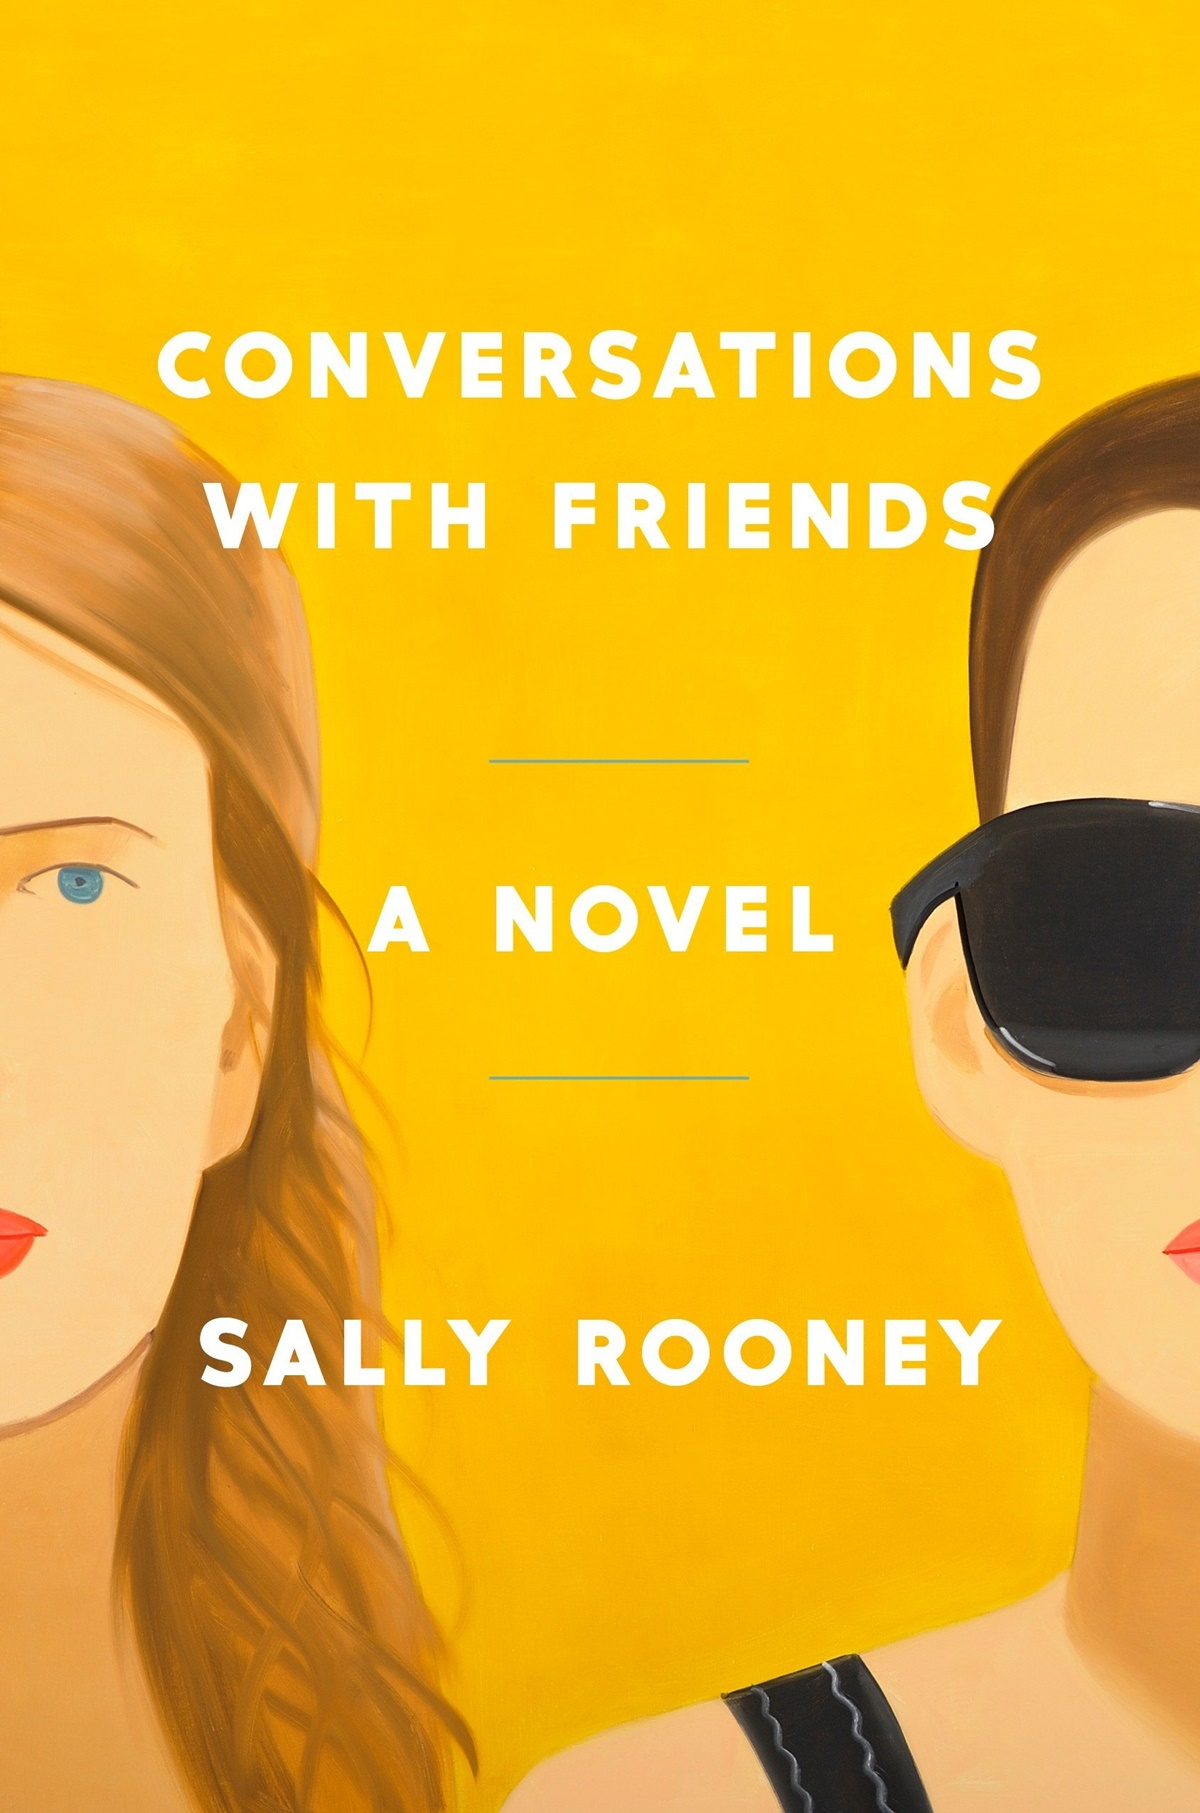 Sally Rooney Books, cover of Conversations with Friends by Sally Rooney, books